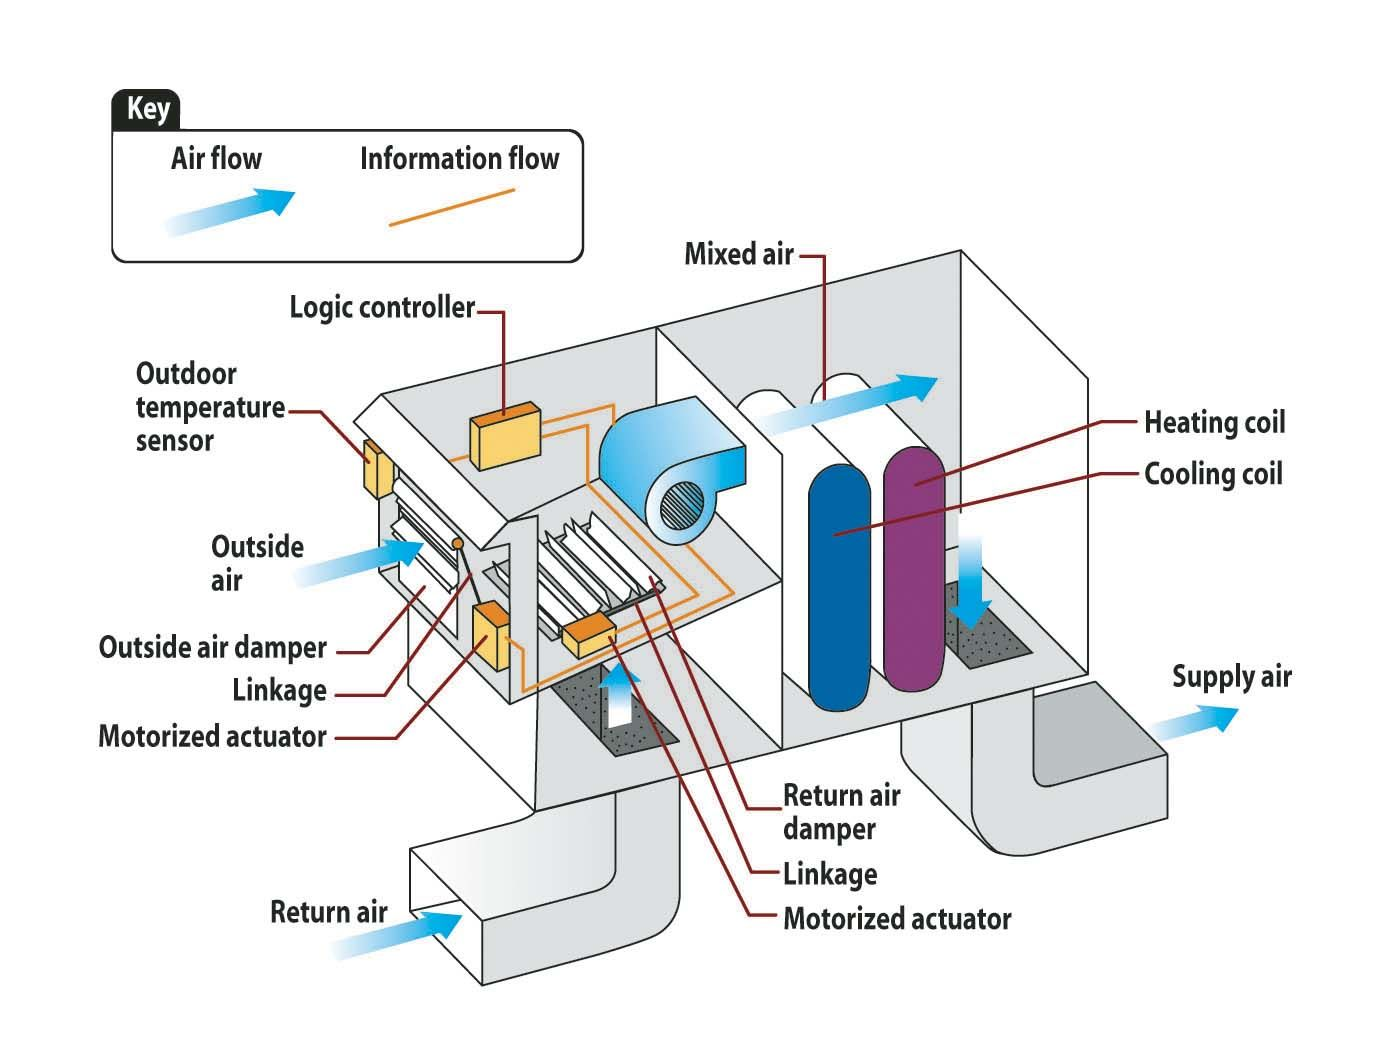 economizer cycle an energy saving strategy in which a part of the hvac system is shut off while the rest is used such as shutting off the refrigeration  [ 1389 x 1056 Pixel ]